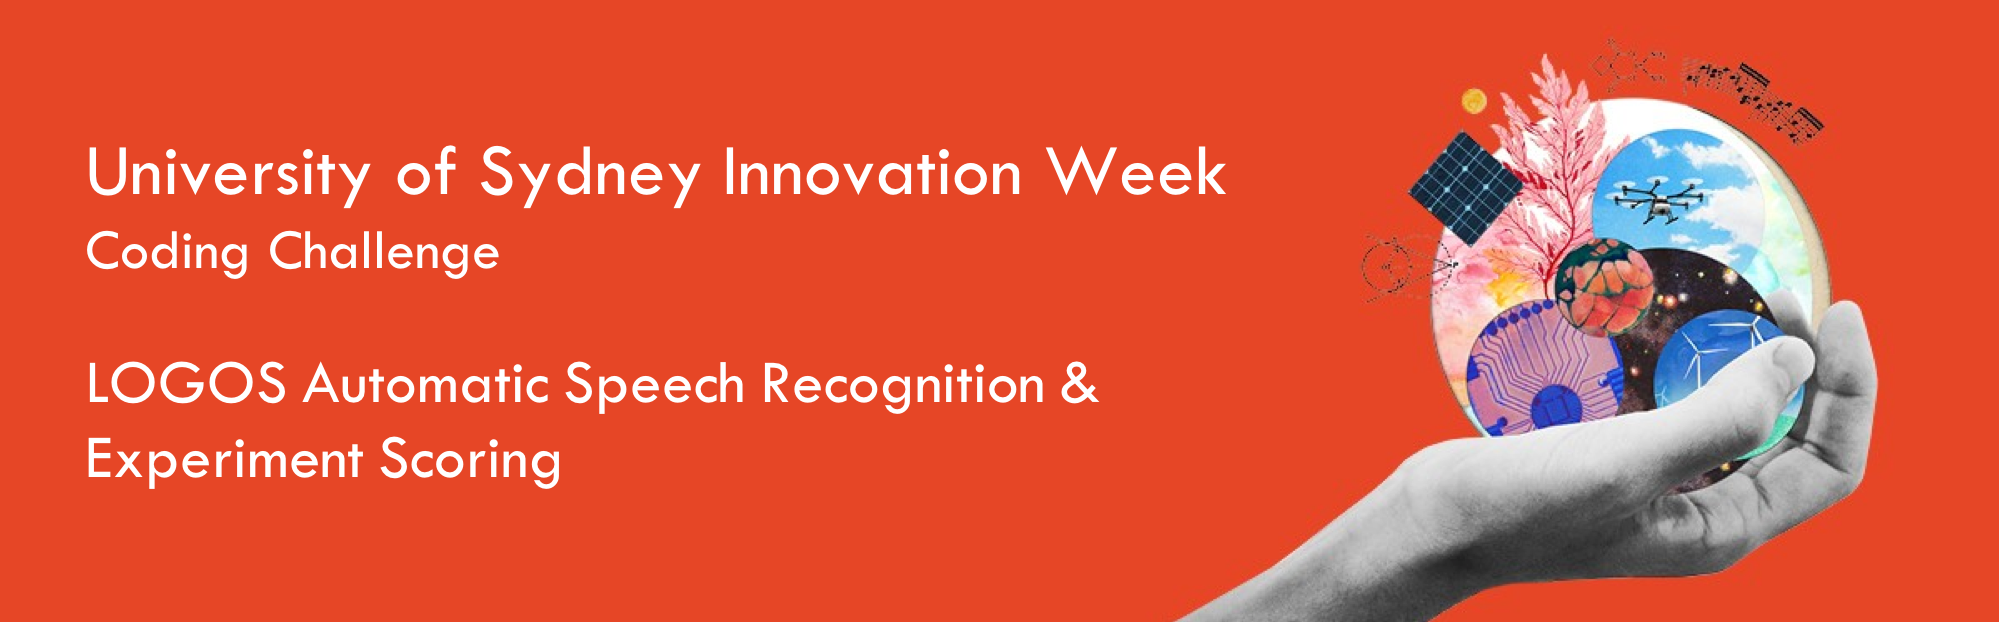 Innovation Week $10,000 Coding Challenge